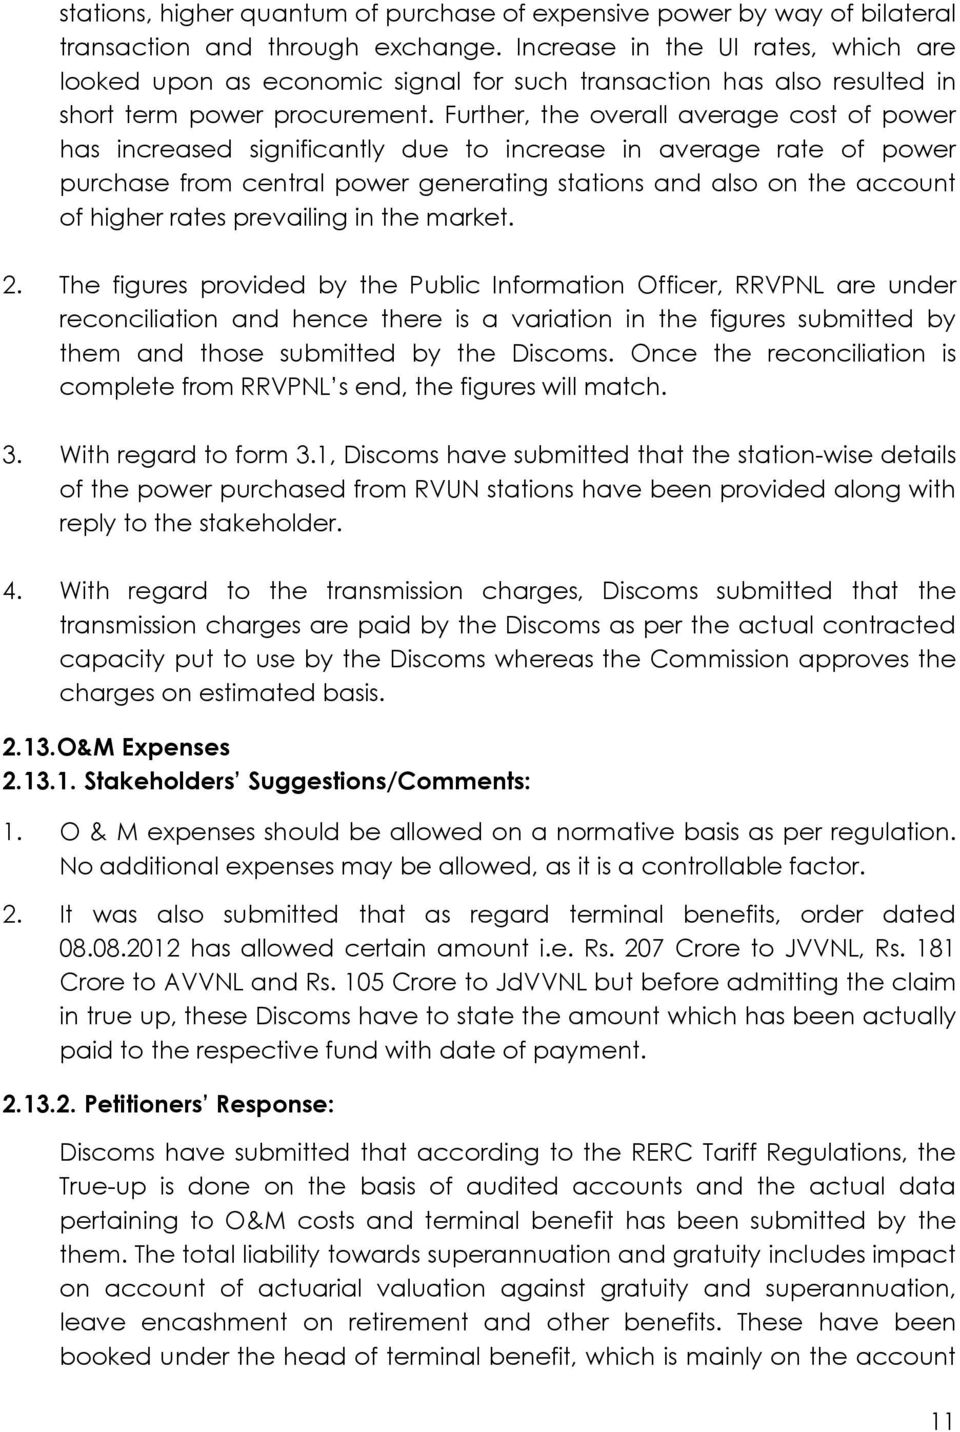 RAJASTHAN ELECTRICITY REGULATORY COMMISSION, JAIPUR Petition No